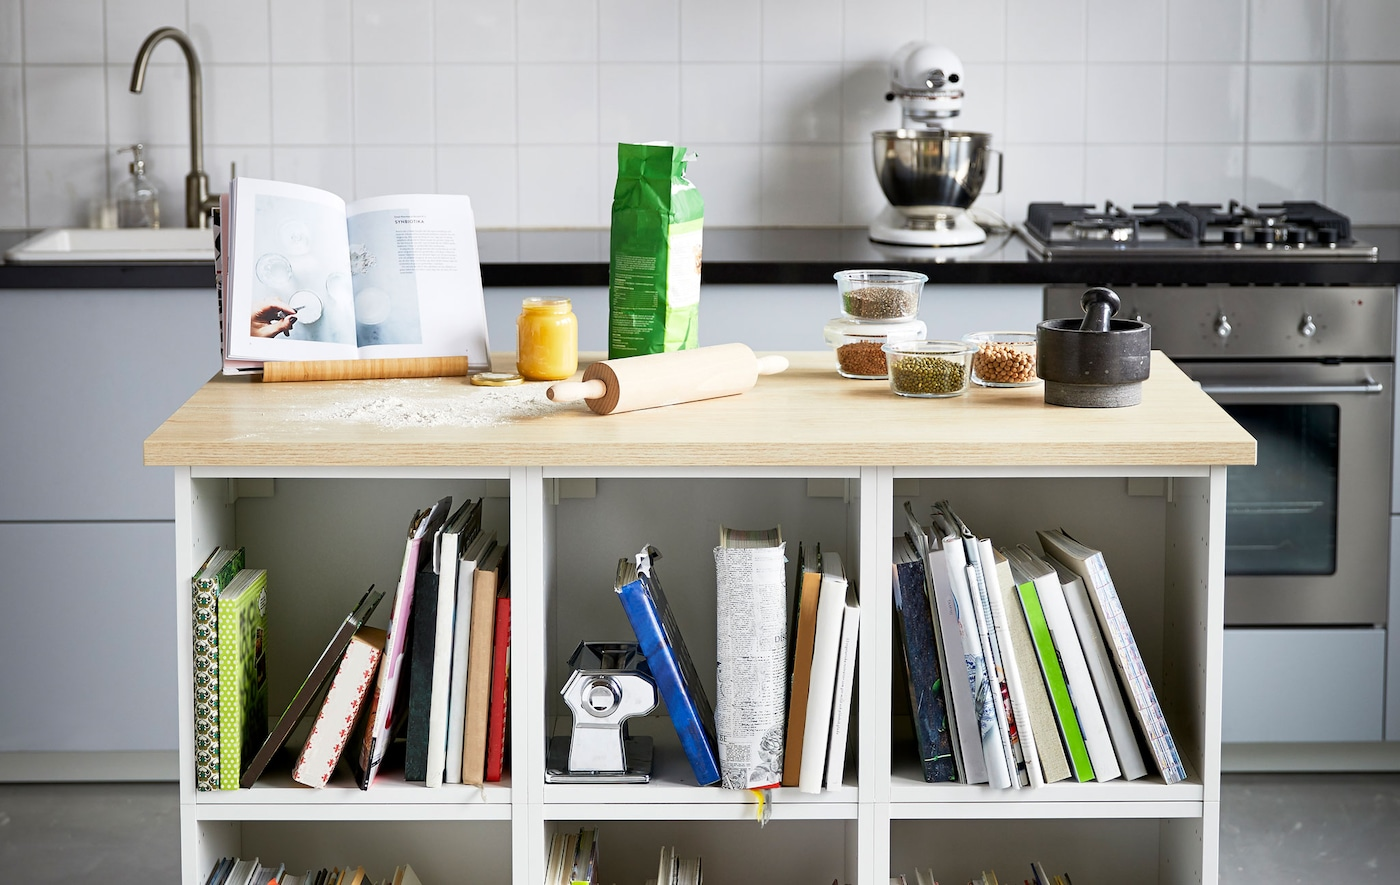 A kitchen island with a wooden countertop and built-in shelves. It's perfect for baking and storing cookbooks.